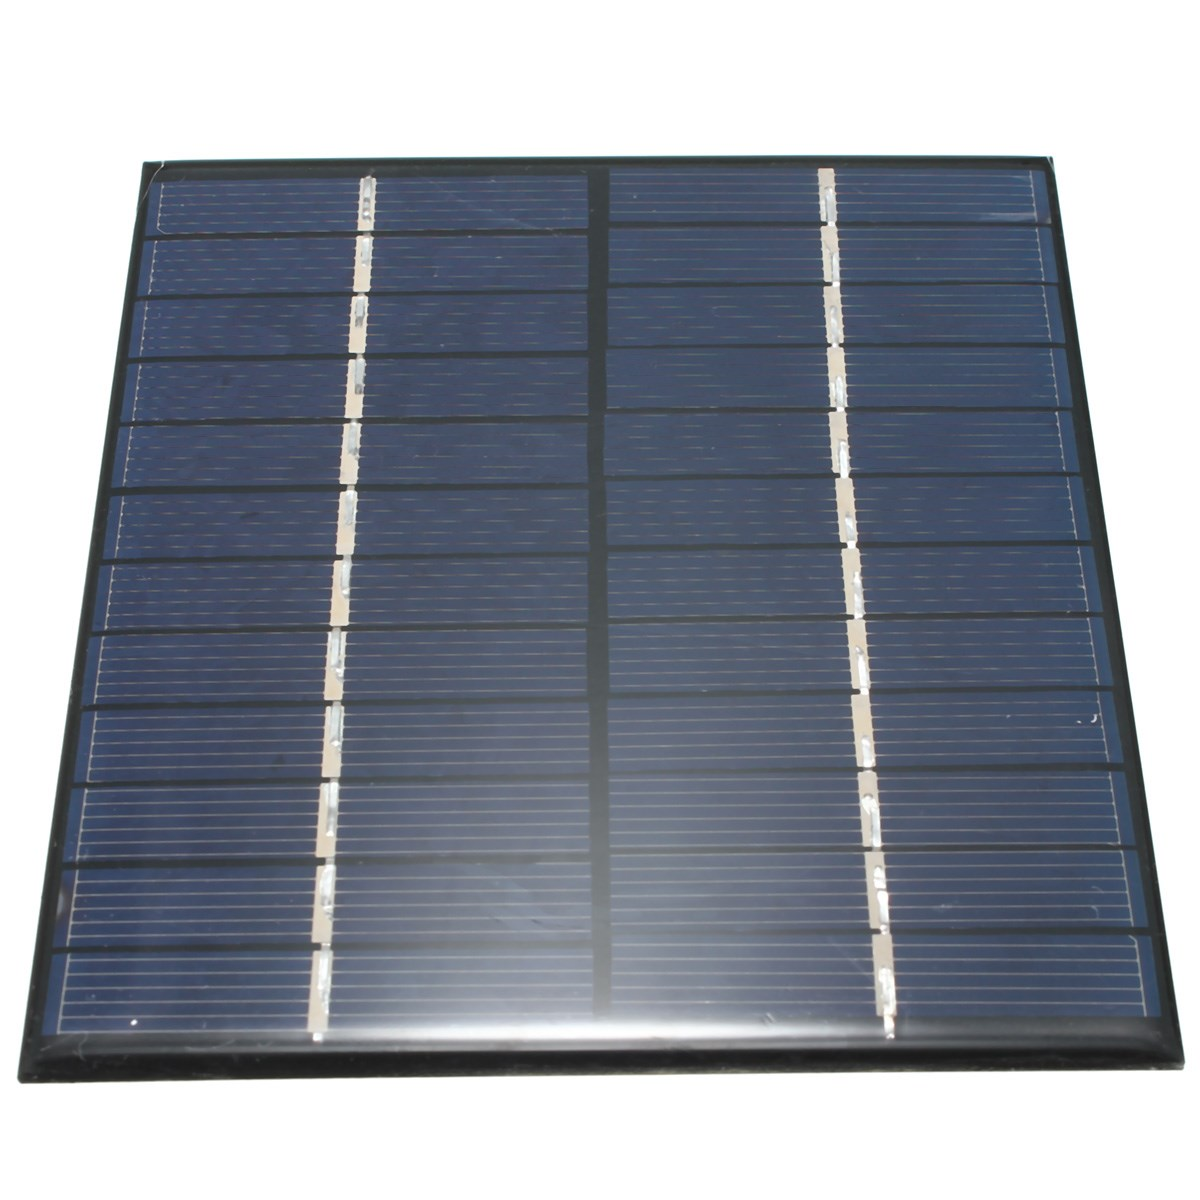 LEORY Hot Sale 12V 2W 160mA Polycrystalline silicon Mini Solar Panel module Cell For Charger DC Battery DIY 136x110mm